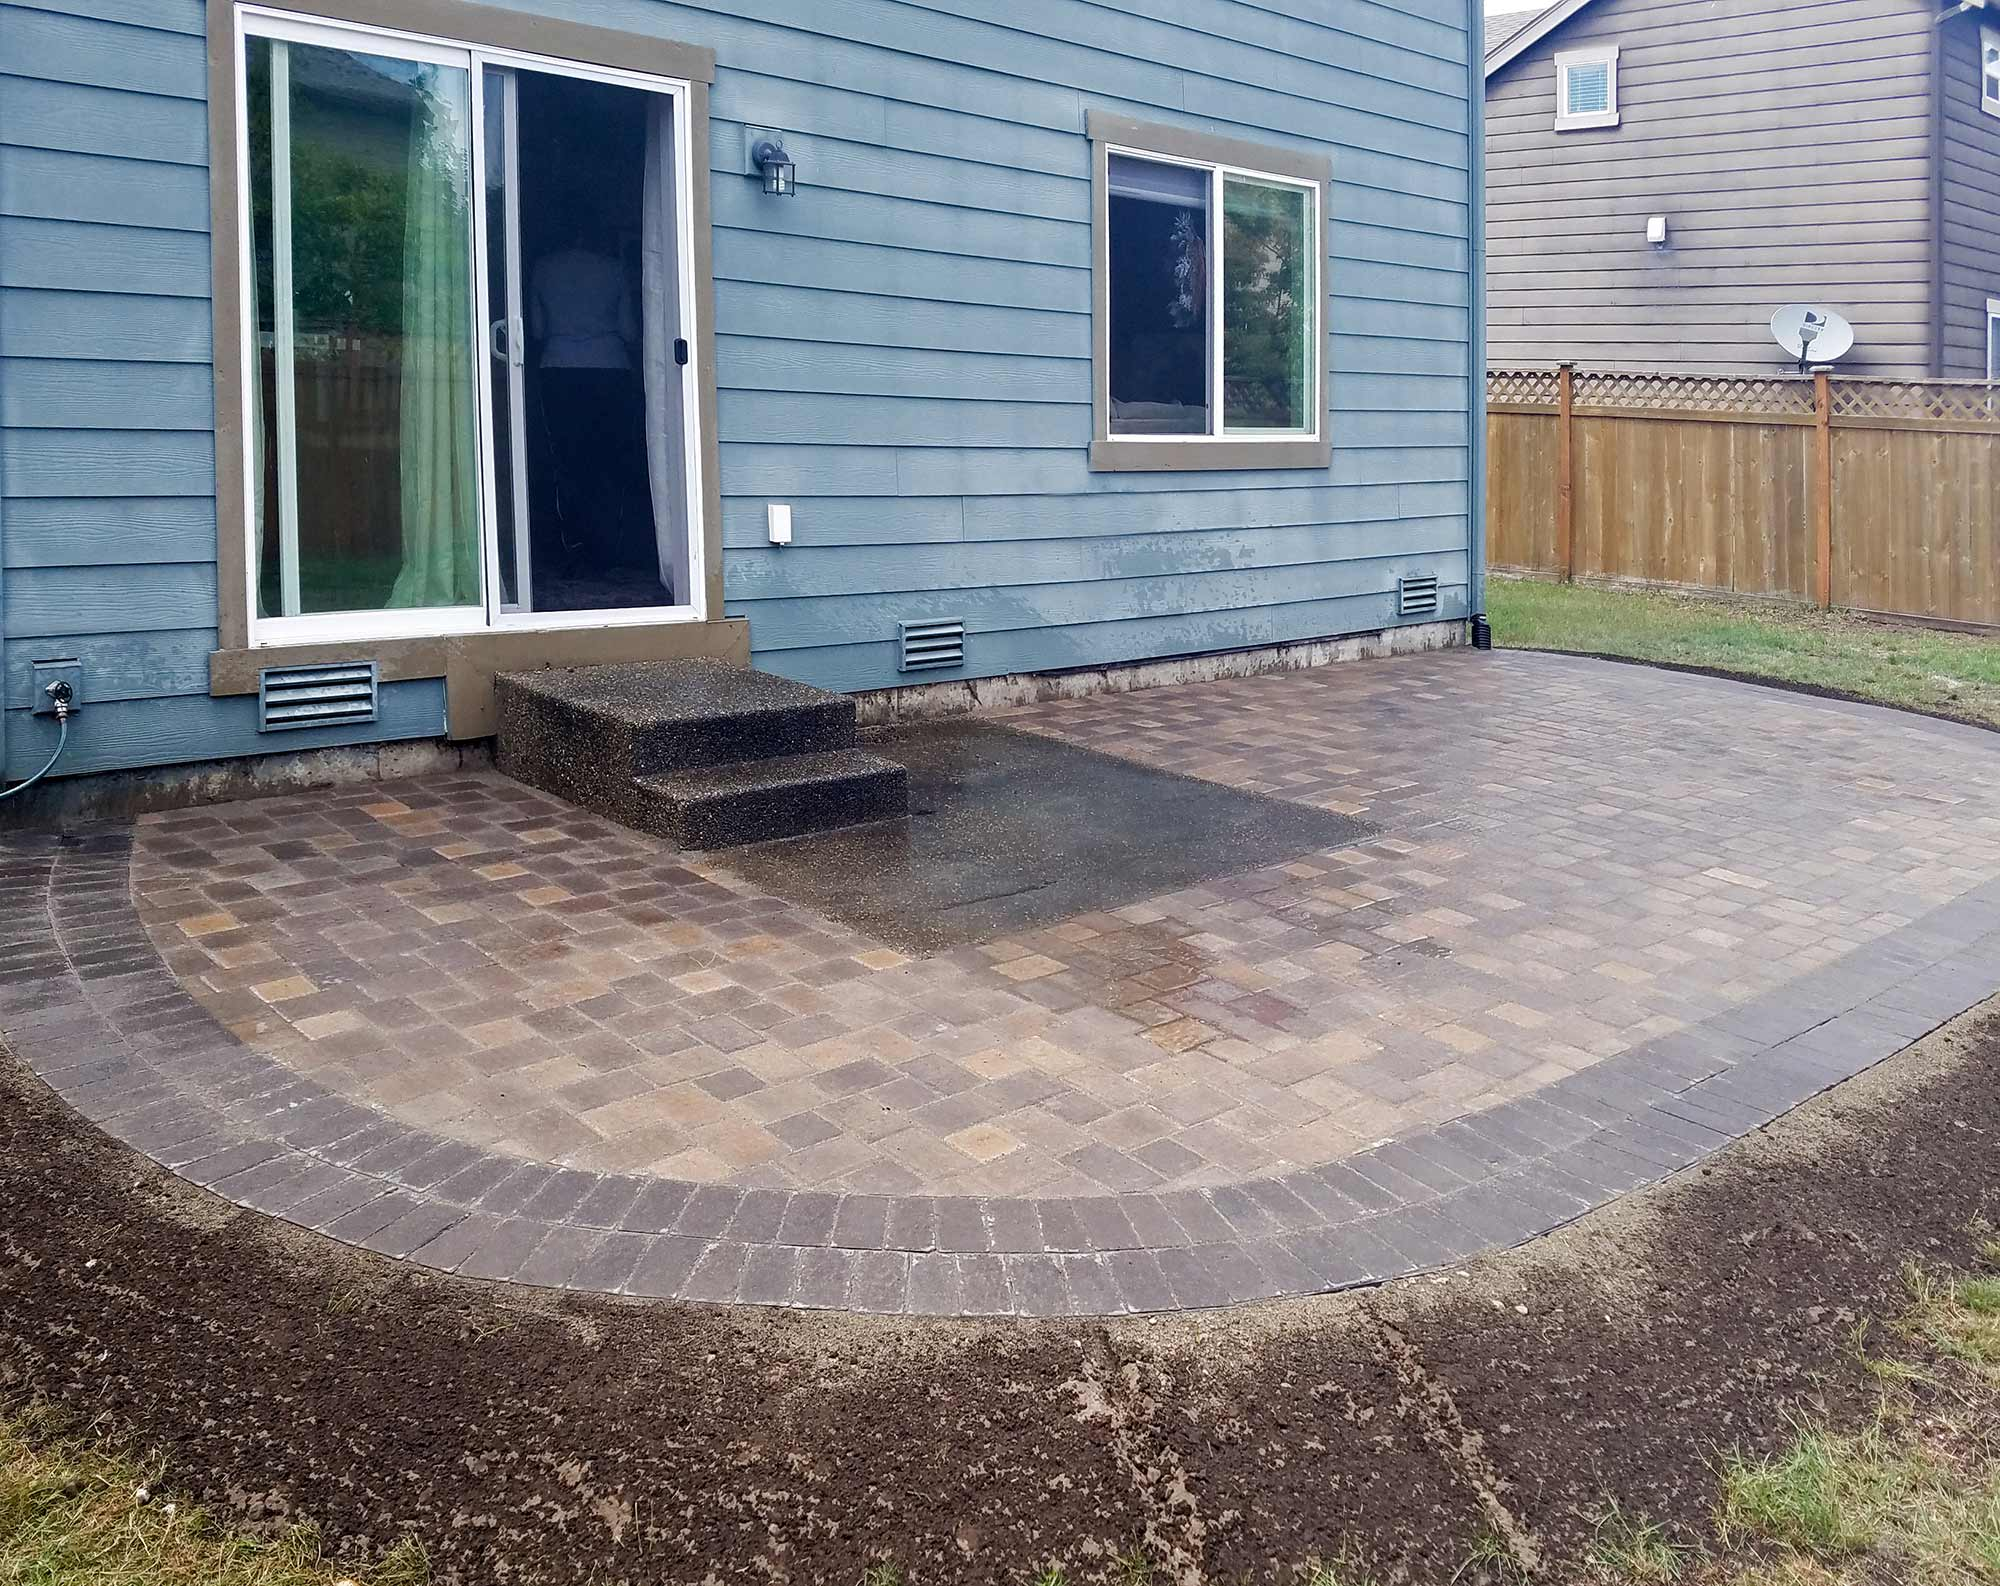 Exceptional Paver Patio Extension Features Western Interlock Slimline Columbia Pavers  With A Double Border.